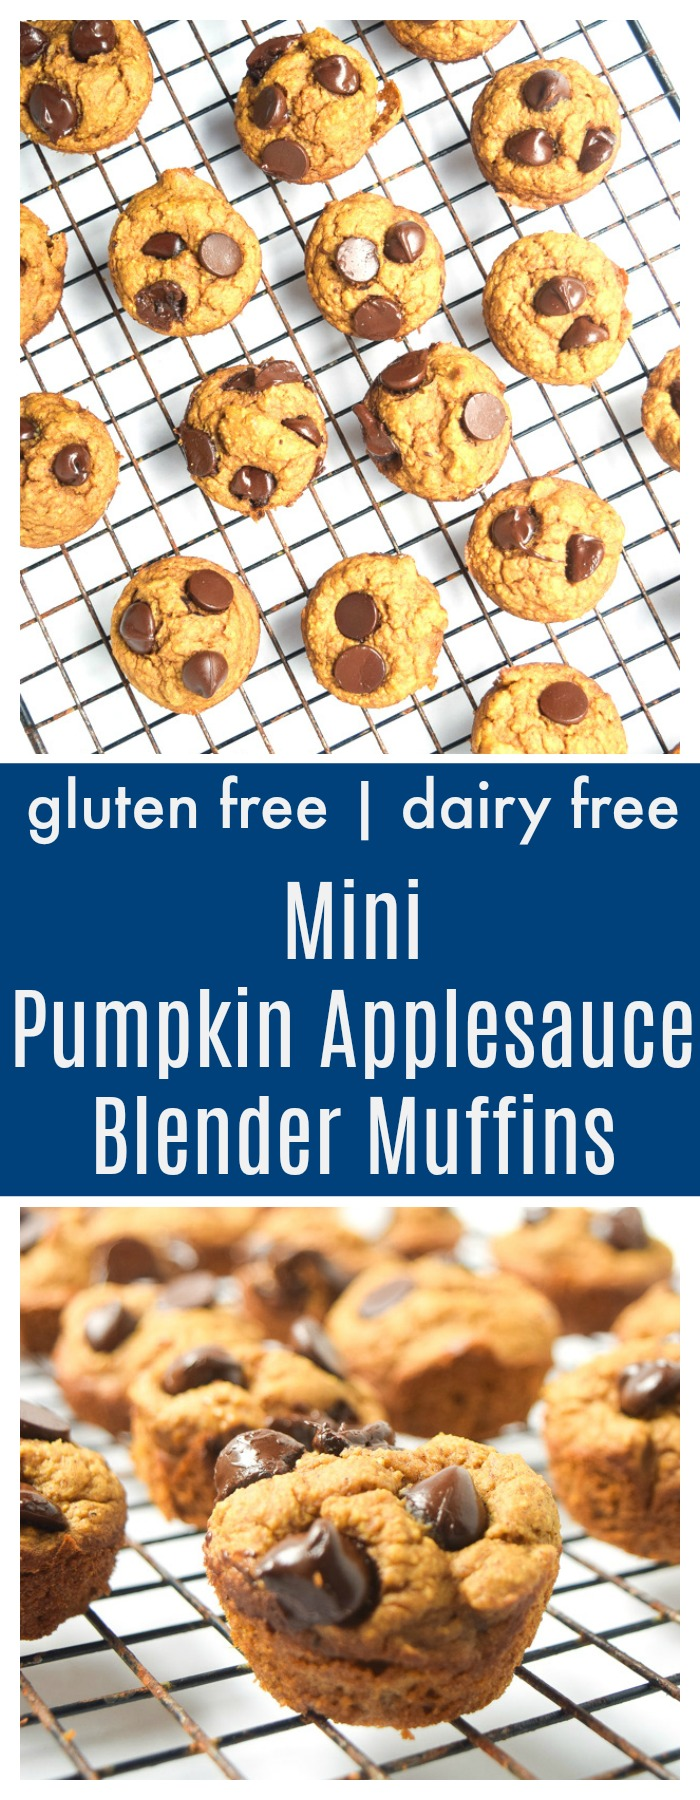 pumpkin applesauce blender muffins